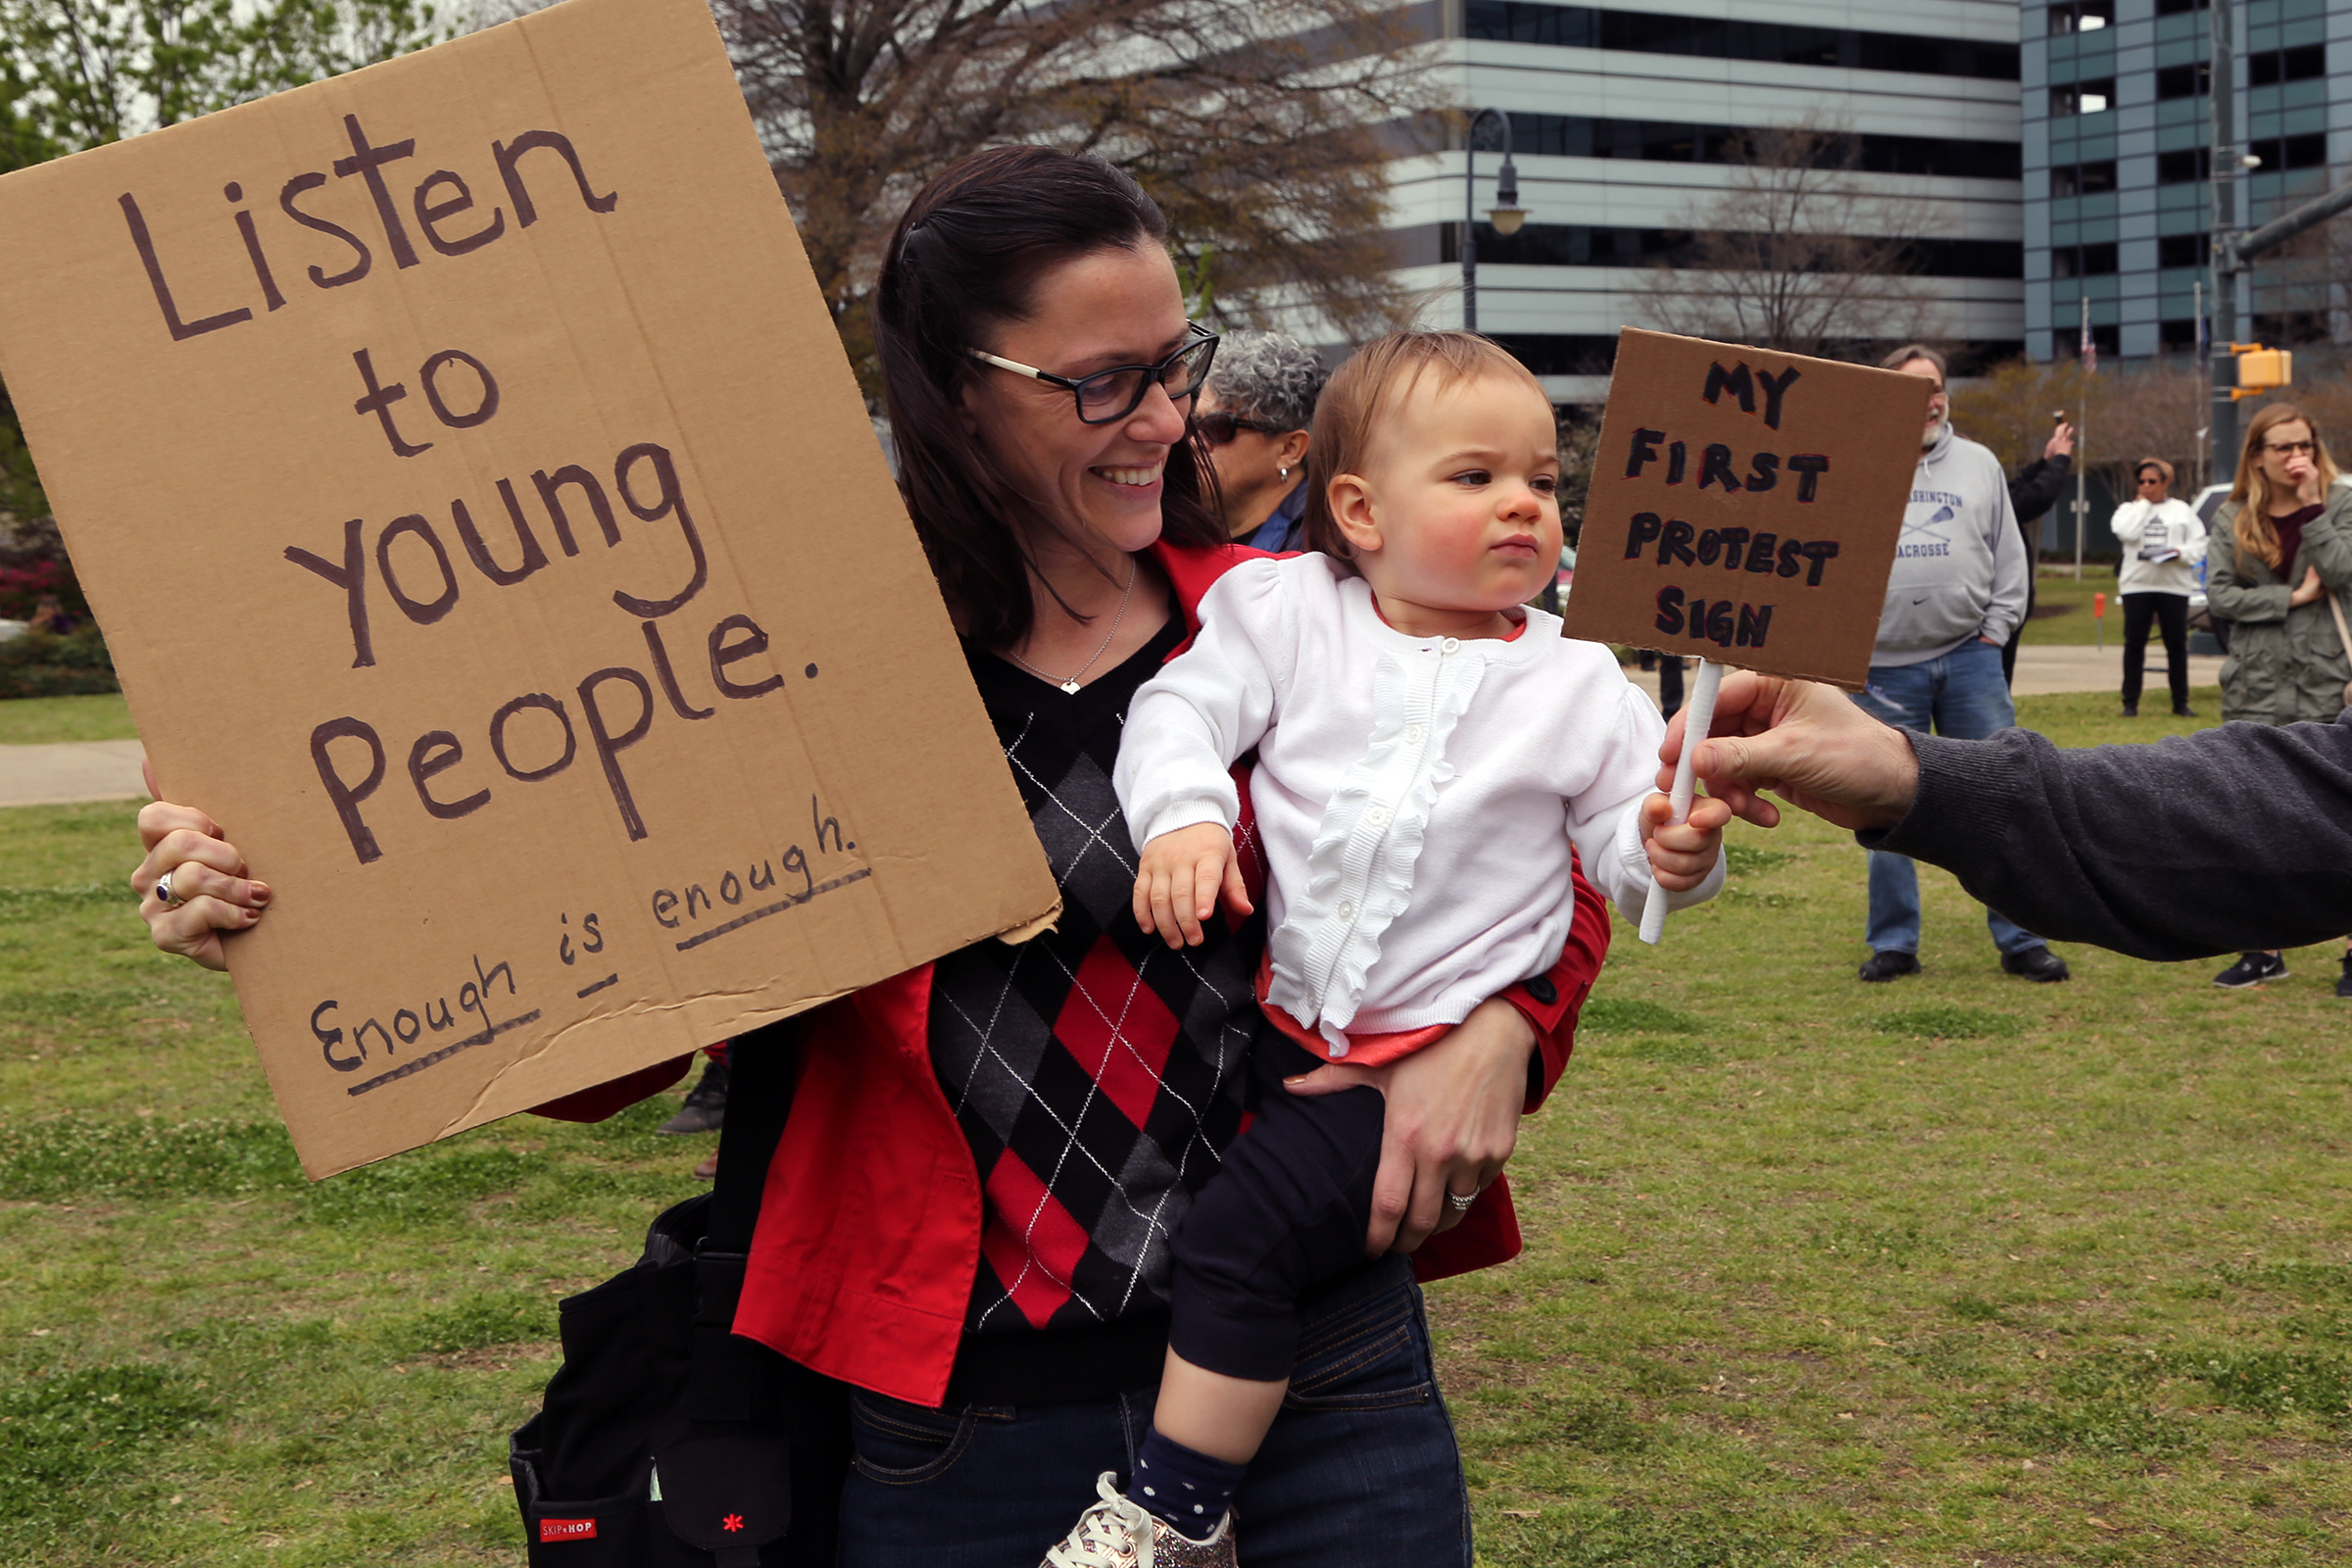 Strollers and slings were a common sight at the march. Parents brought along babies and toddlers, with signs to match.